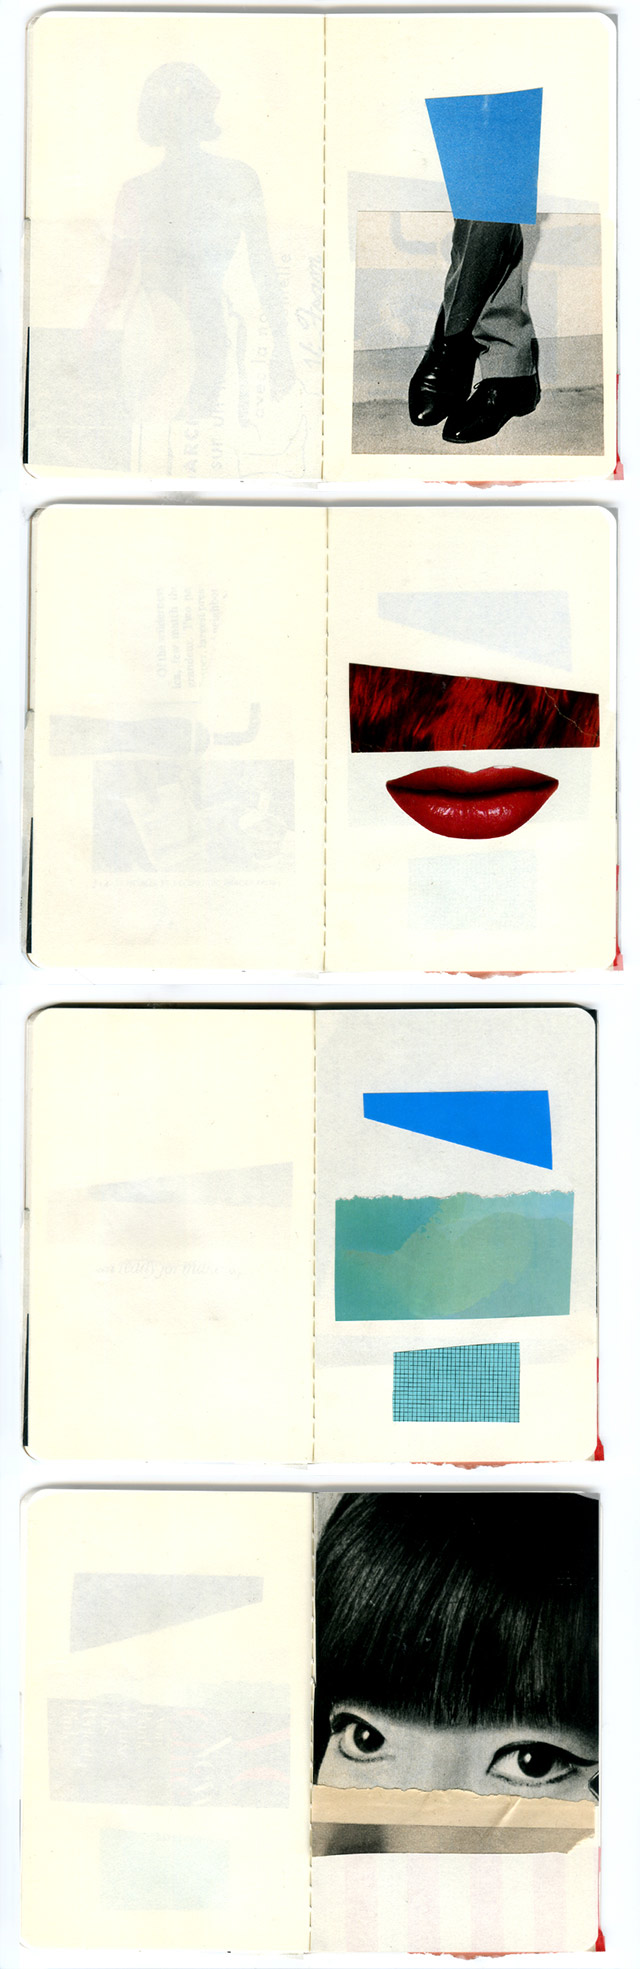 collage sketchbook pages 9-12 by laura redburn